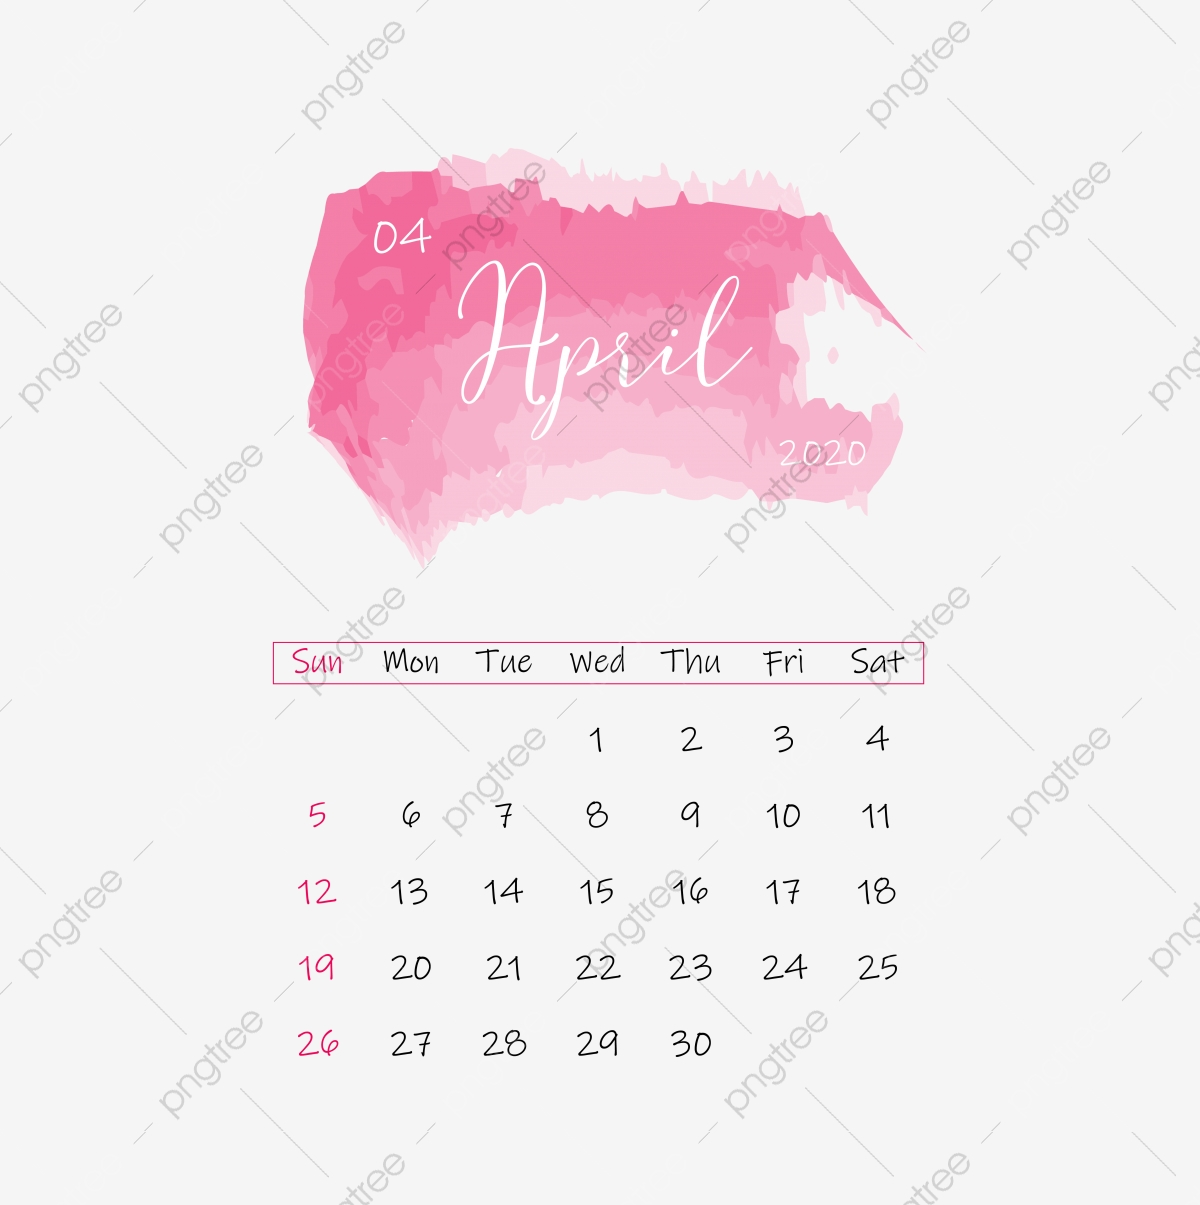 2020 Calendar Png Images Vector And Psd Files Free Download On